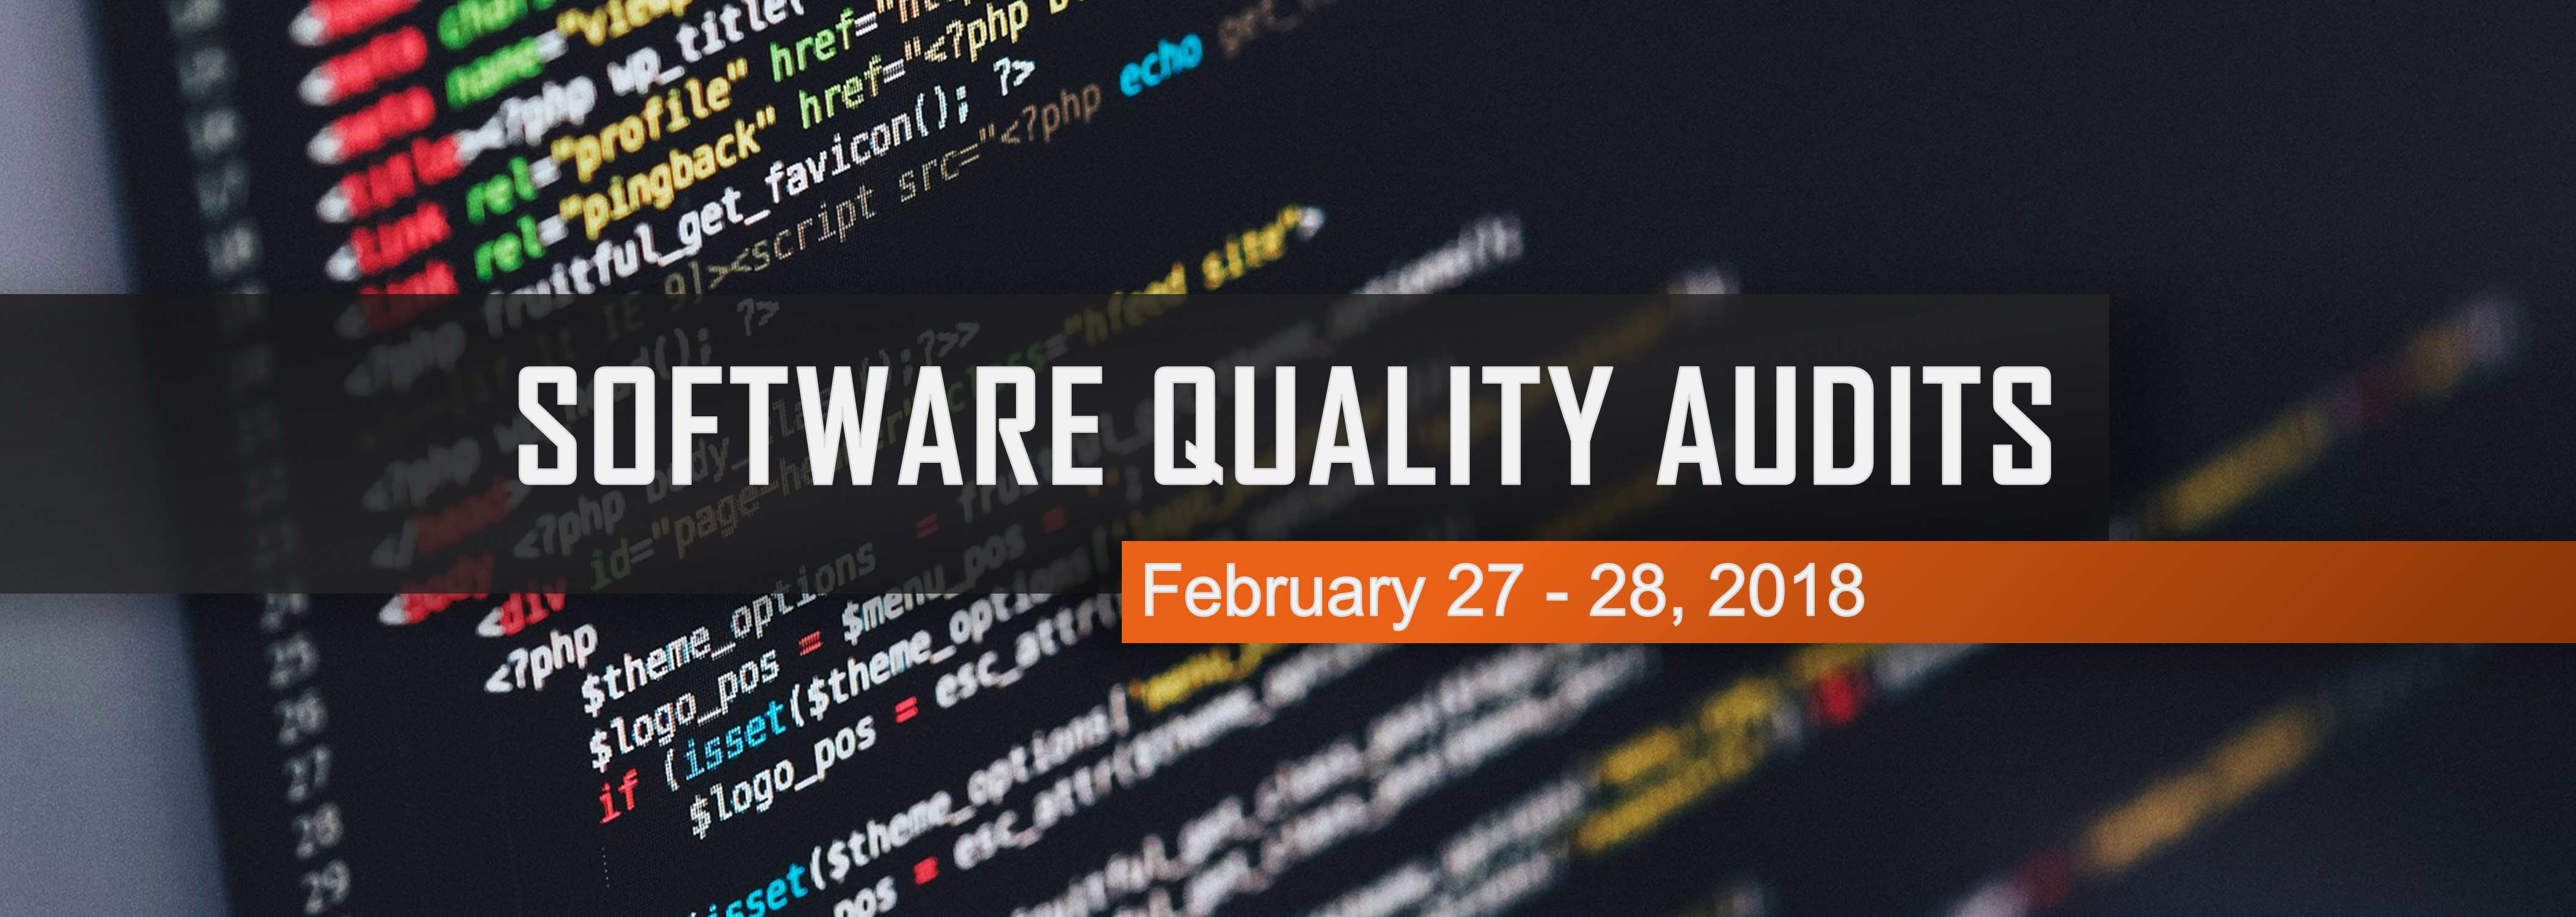 Software Quality Audits on February 27-28, 2018